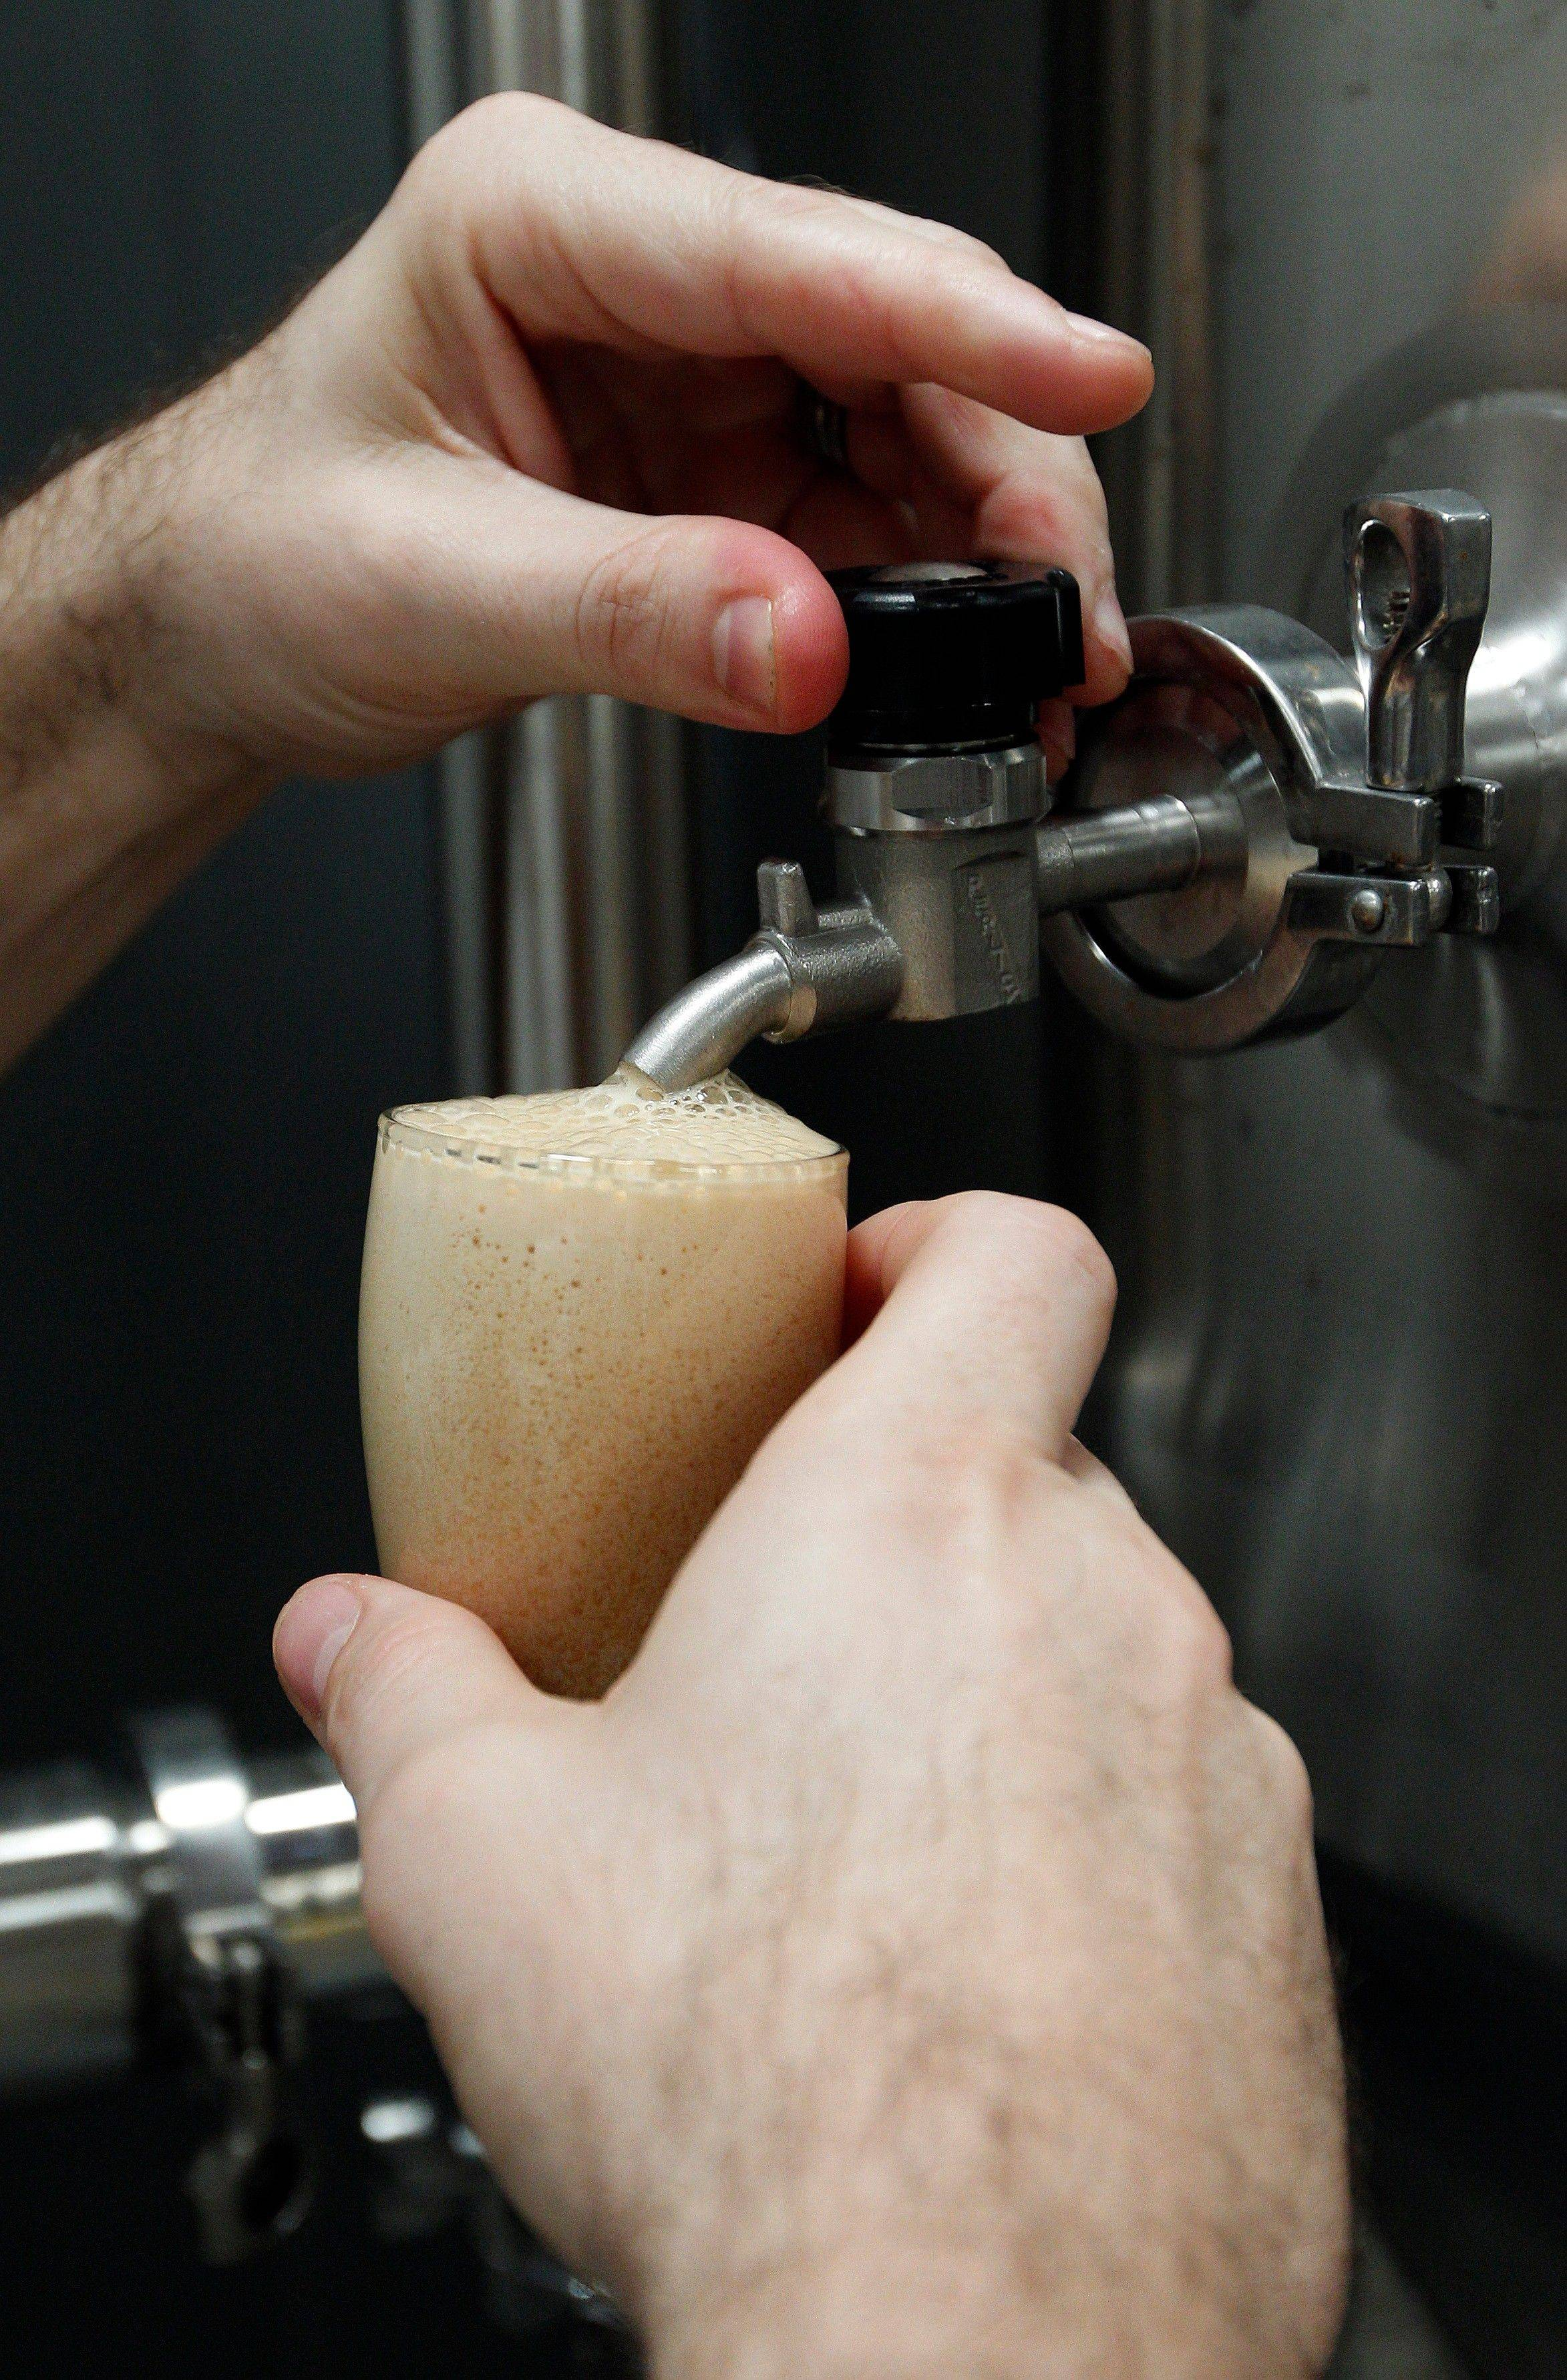 Joey Redner pours a beer sample at Cigar City Brewing Co. in Tampa, Fla. Cigar City uses ingredients such as Spanish cedar, guava, Cuban espresso and citrus woods to craft beers that taste of Tampa's heritage.